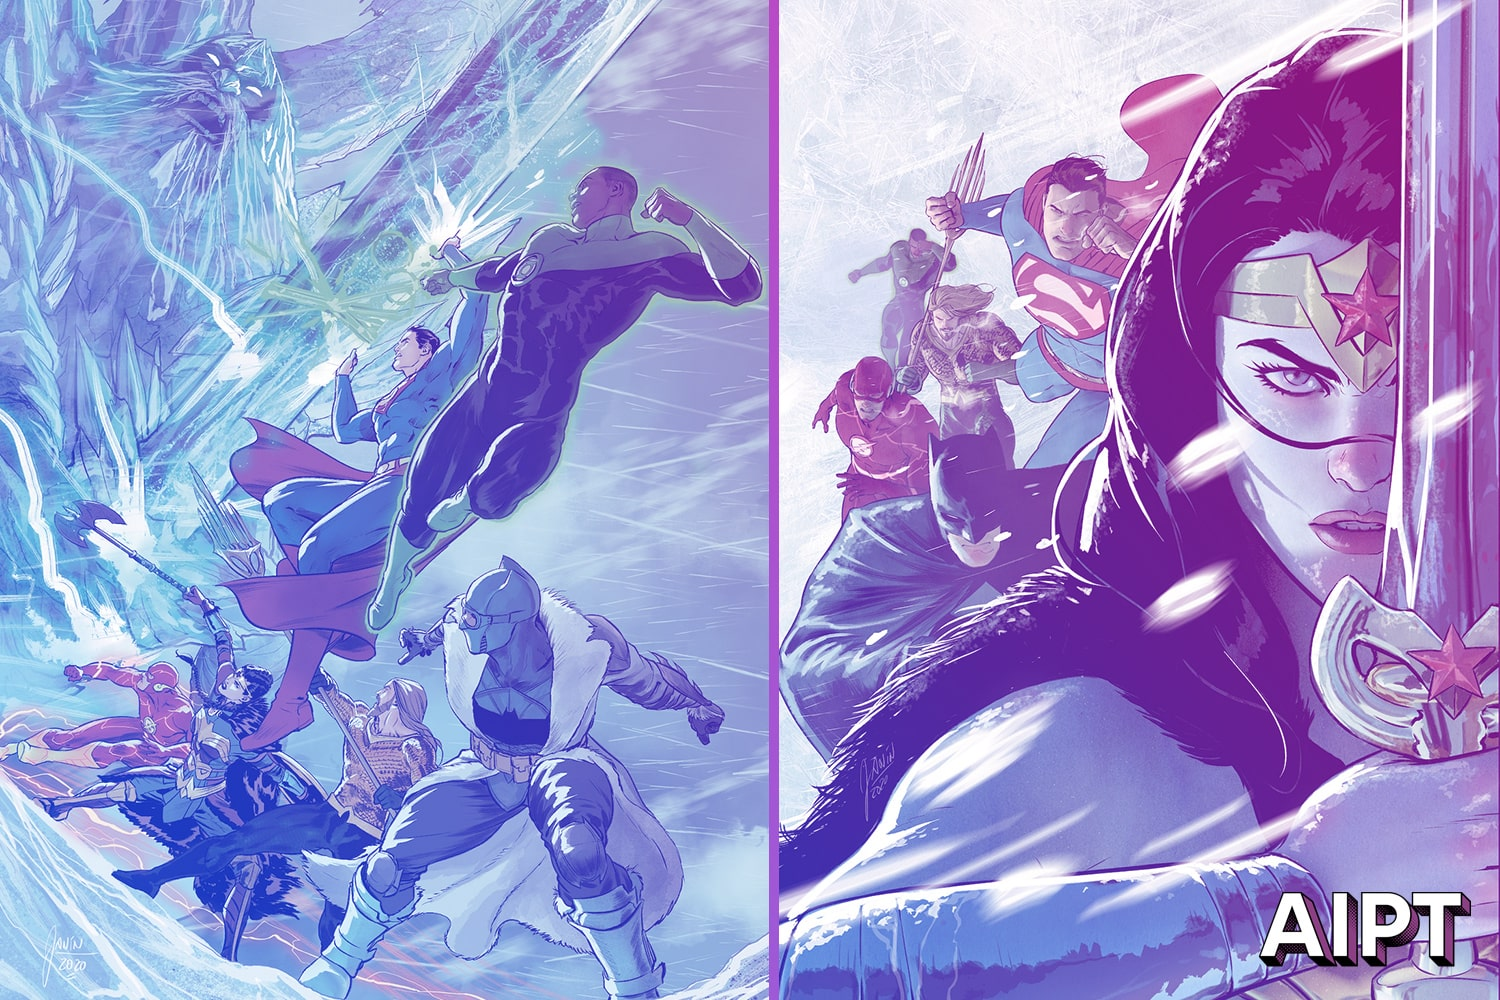 Justice League: Endless Winter is a revenge story against an ancient enemy.